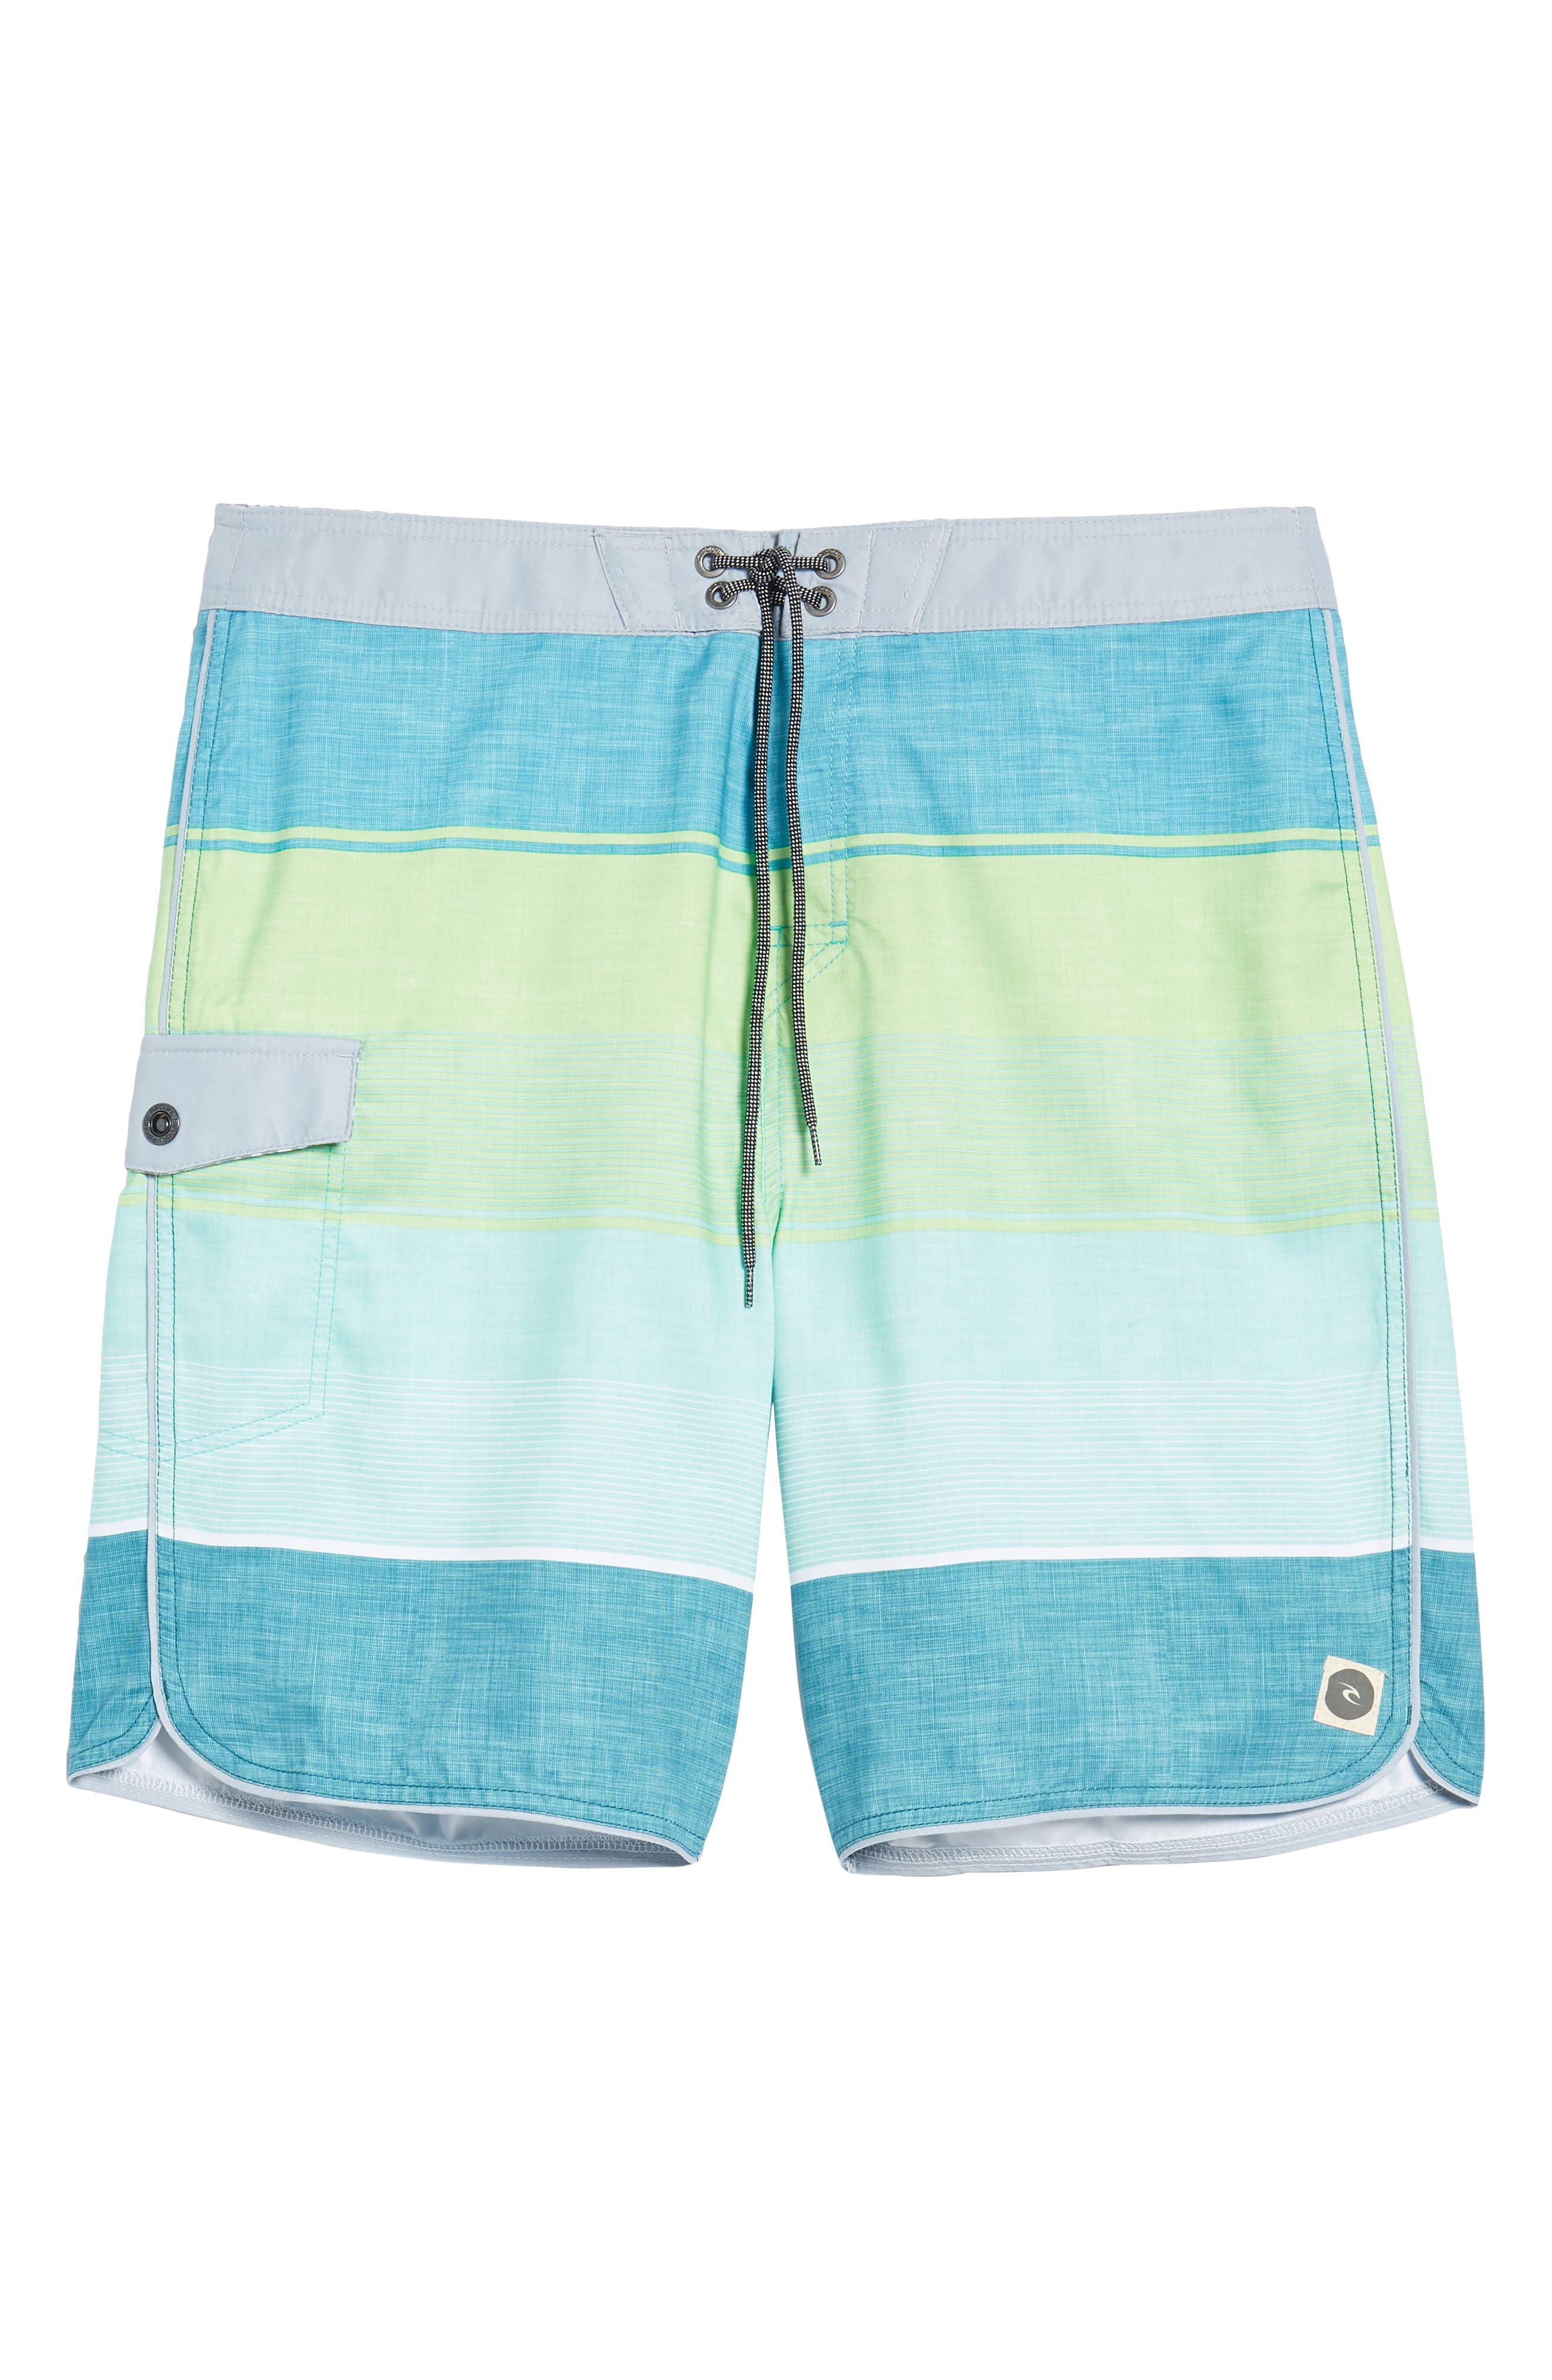 Good Vibes Board Shorts,                             Alternate thumbnail 16, color,